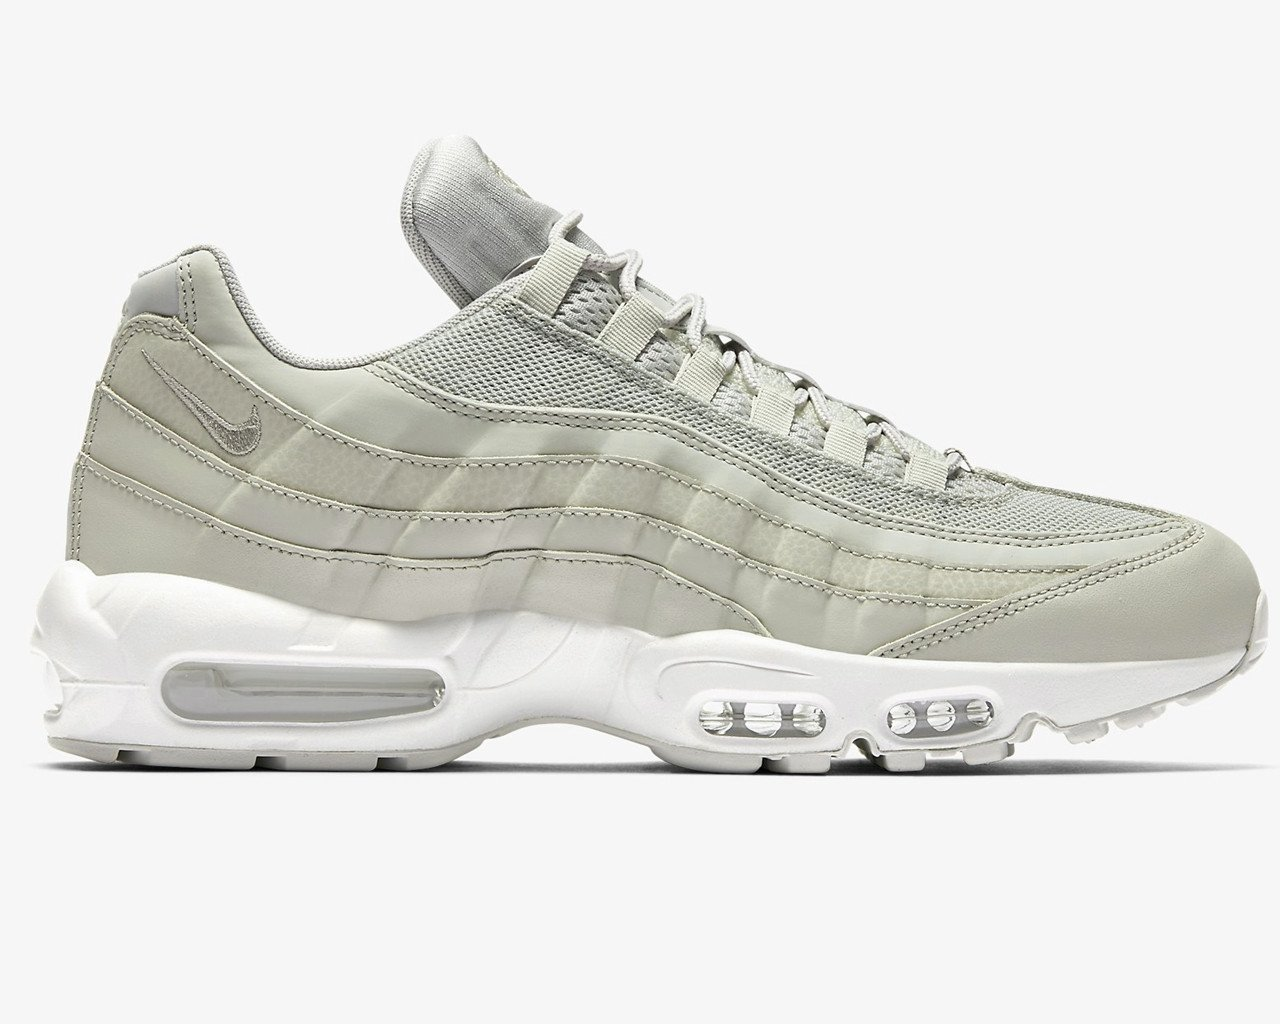 Nike AIR MAX 95 ESSENTIAL 749766 020 Pale Grey Trainers